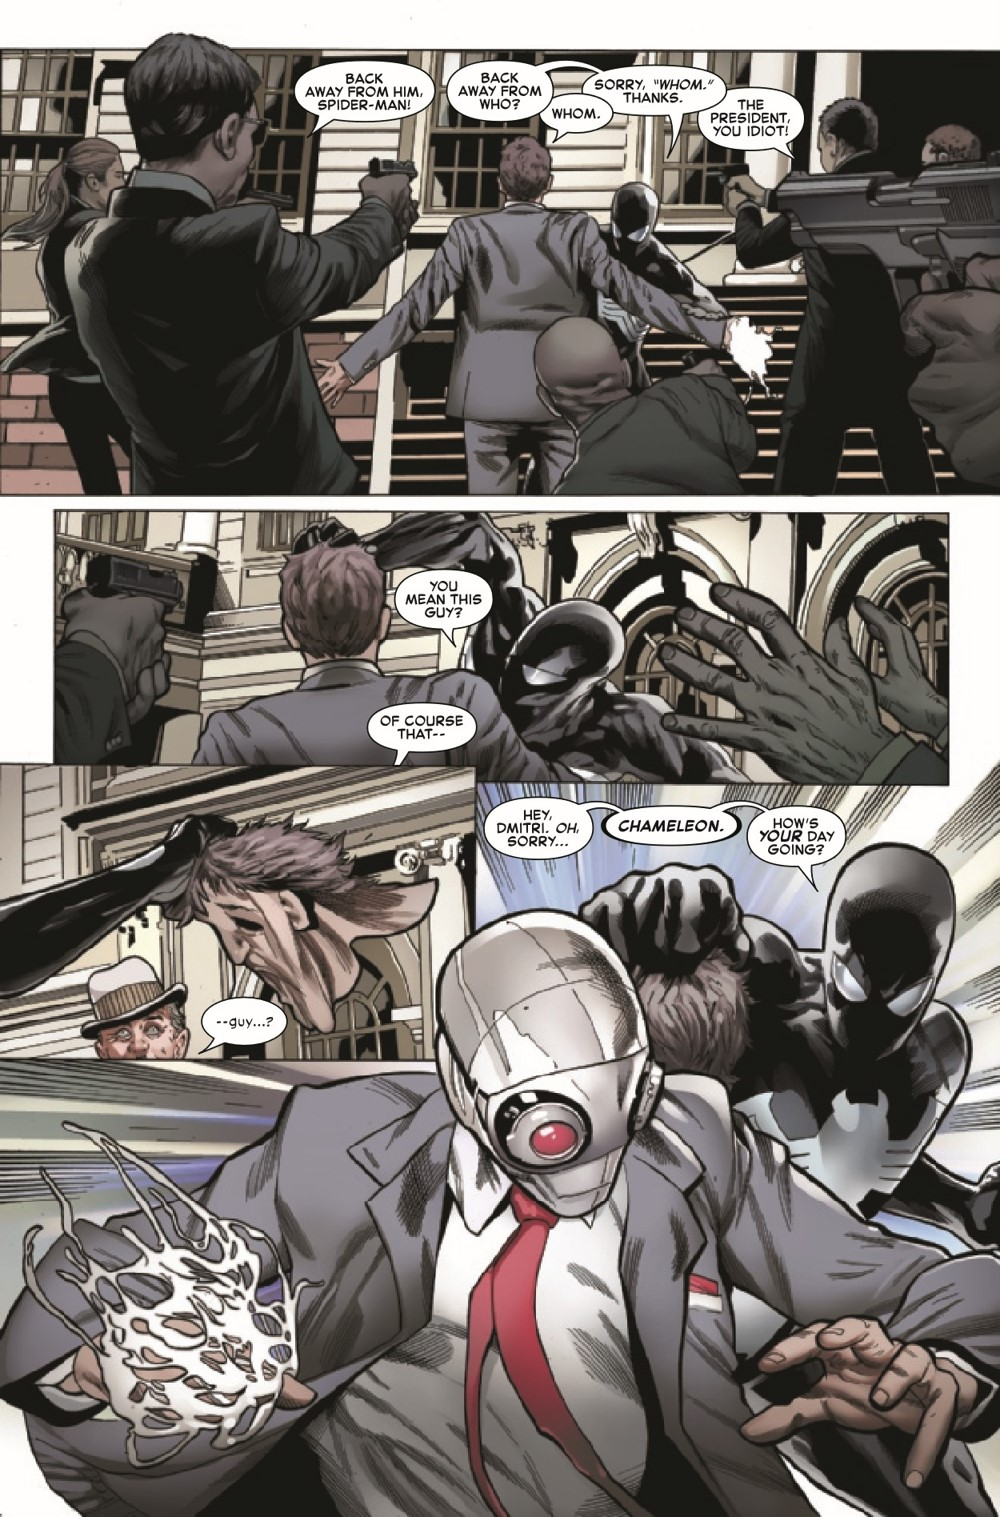 SYMBIOTESMCR2021001_Preview-6 ComicList Previews: SYMBIOTE SPIDER-MAN CROSSROADS #1 (OF 5)